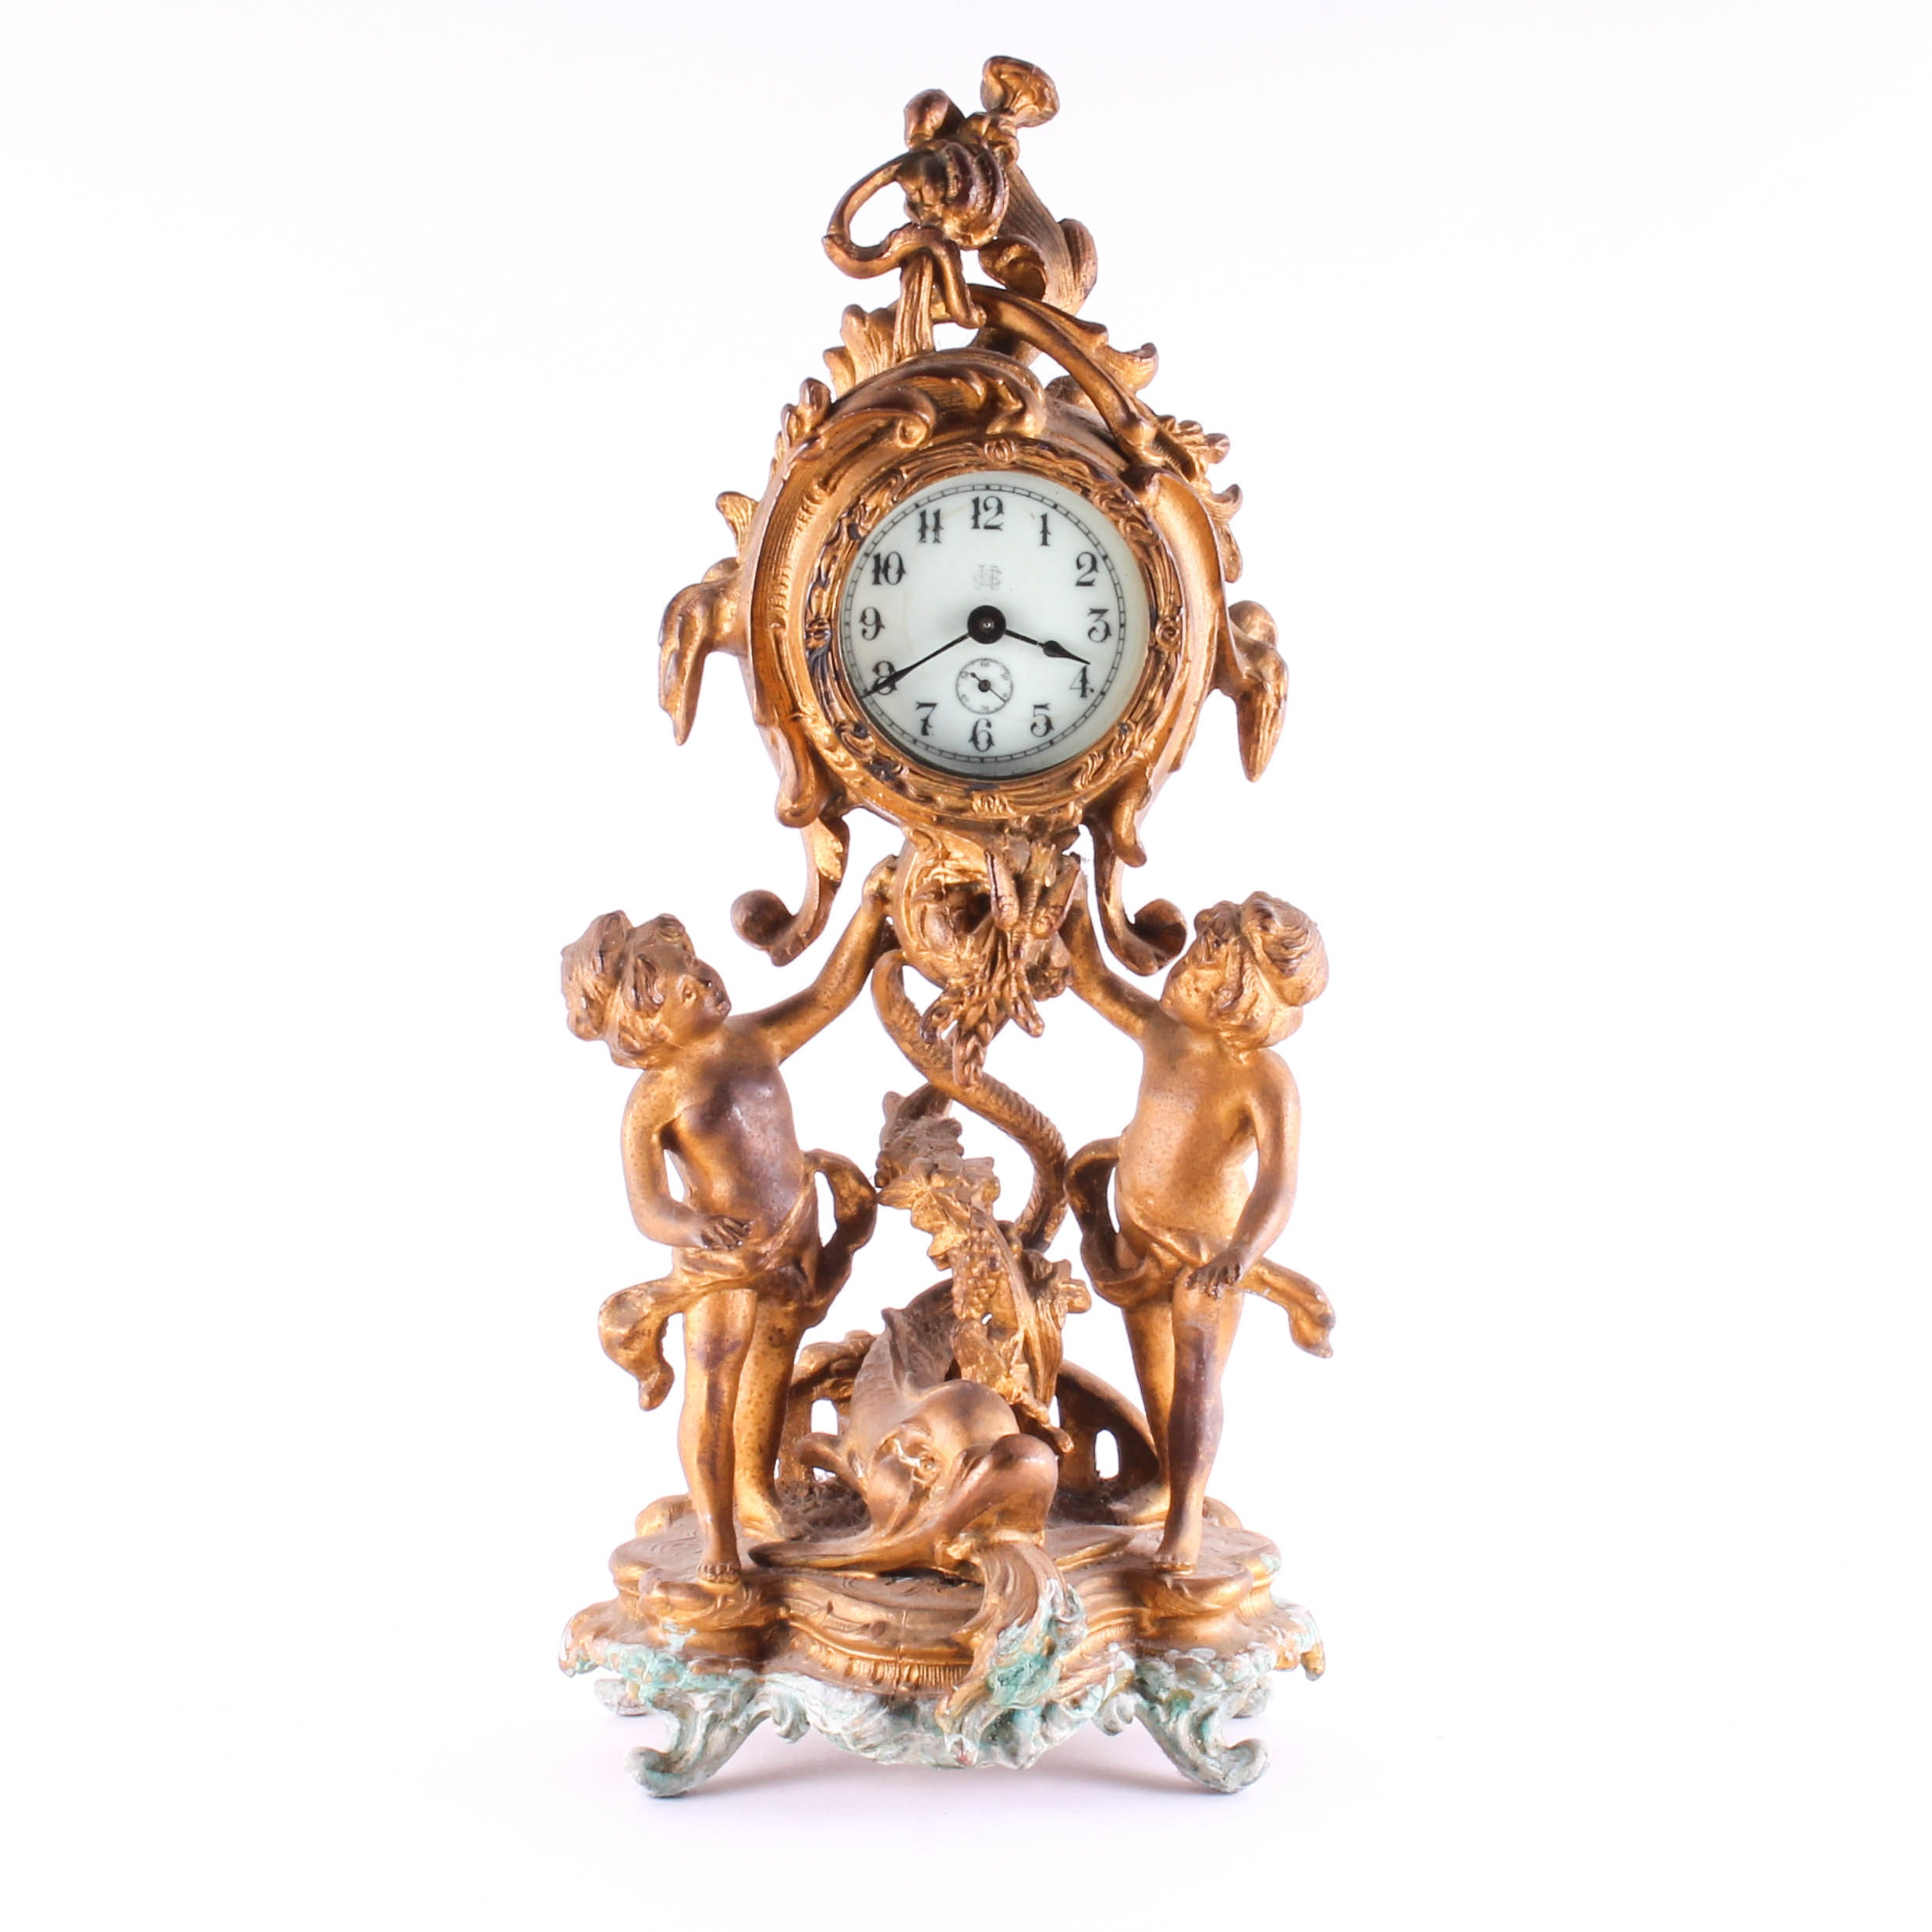 Jennings Brothers Antique Metal Decorative Table Clock ...